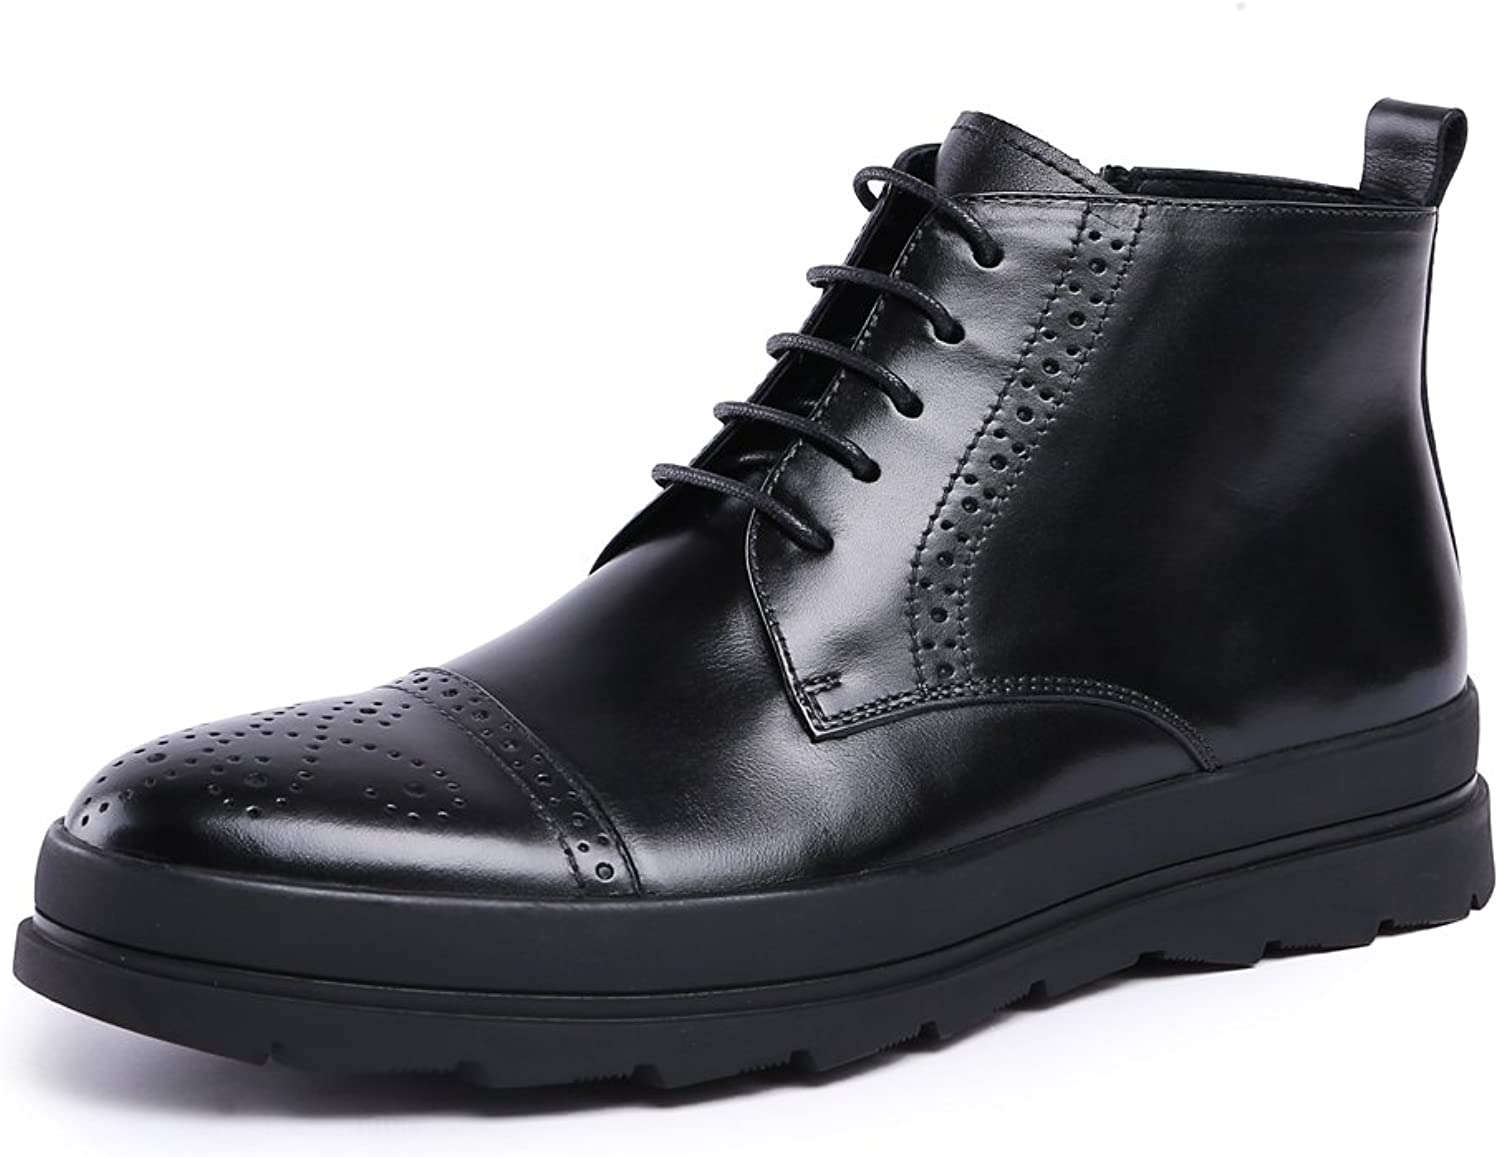 MedzRE Men's Black Leather Lace up Oxford Dress Brogue Ankle Boots